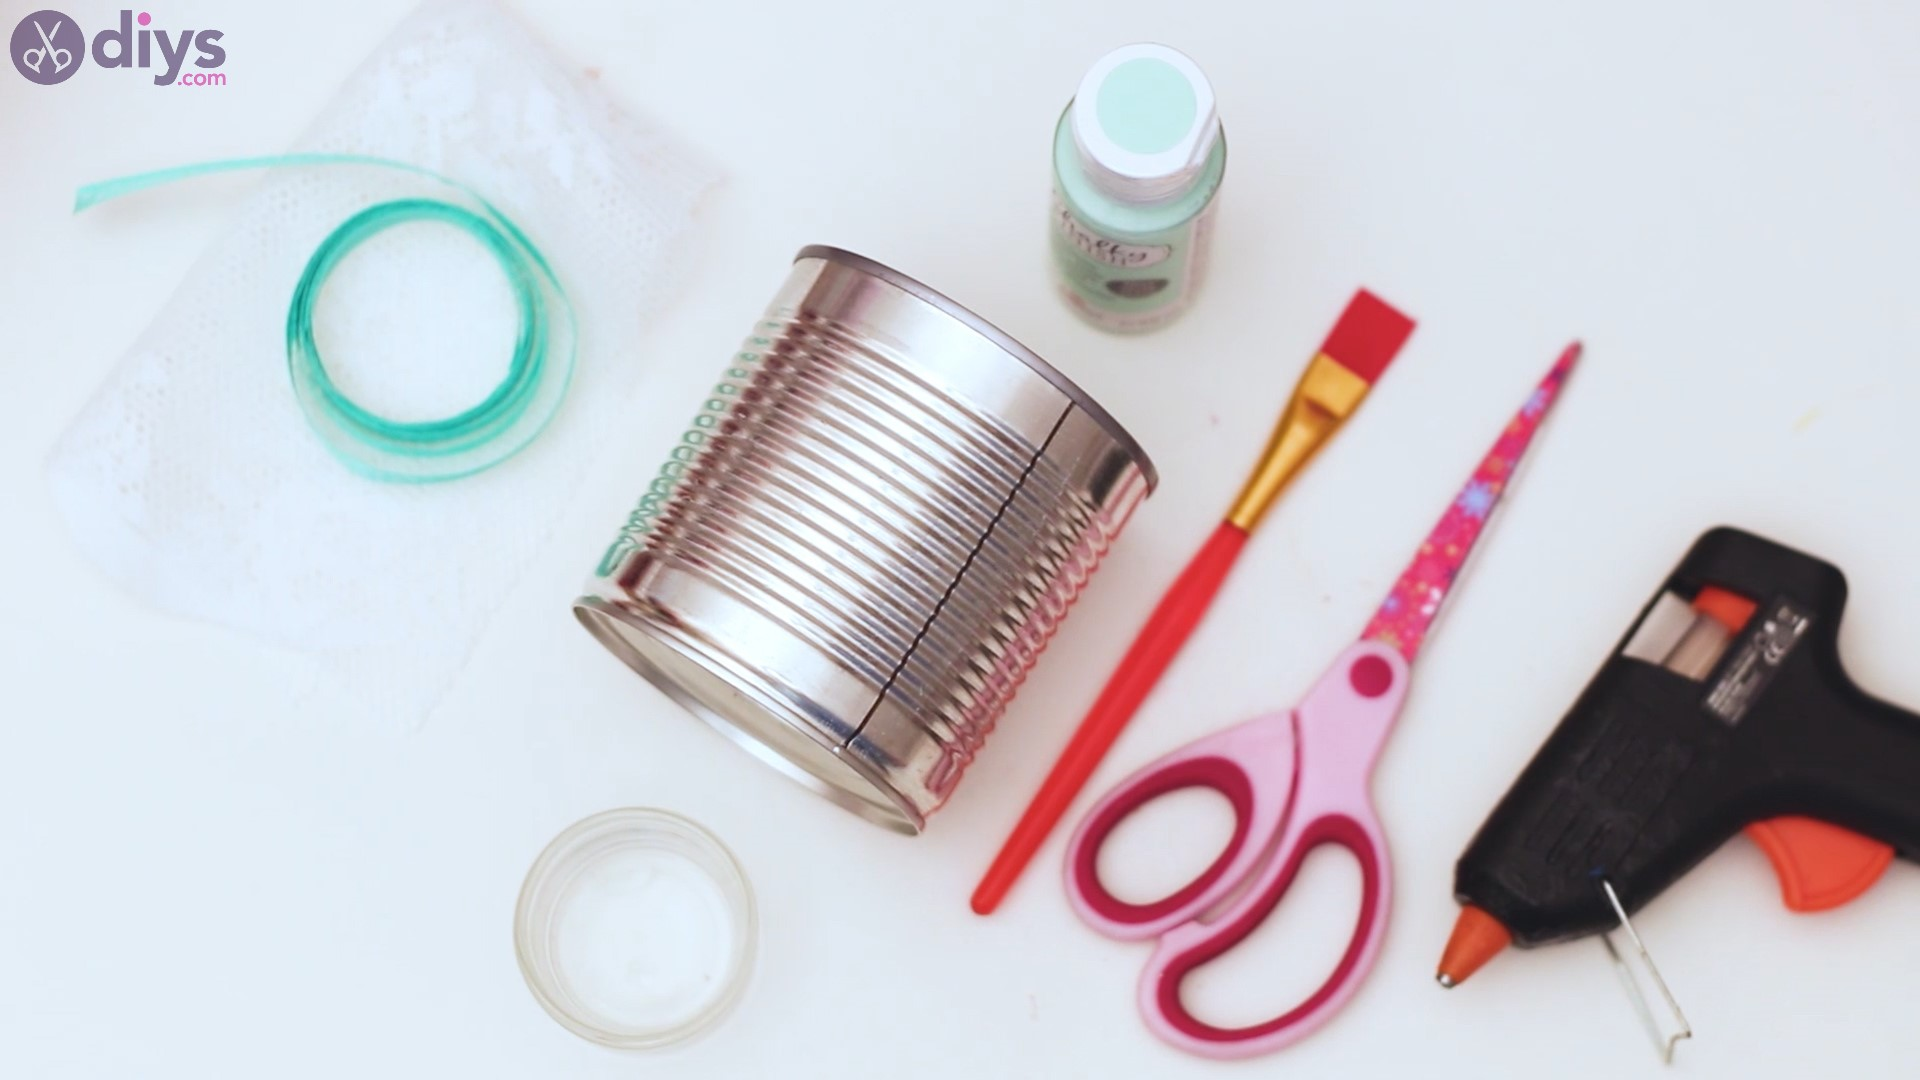 Lace tin can holder material